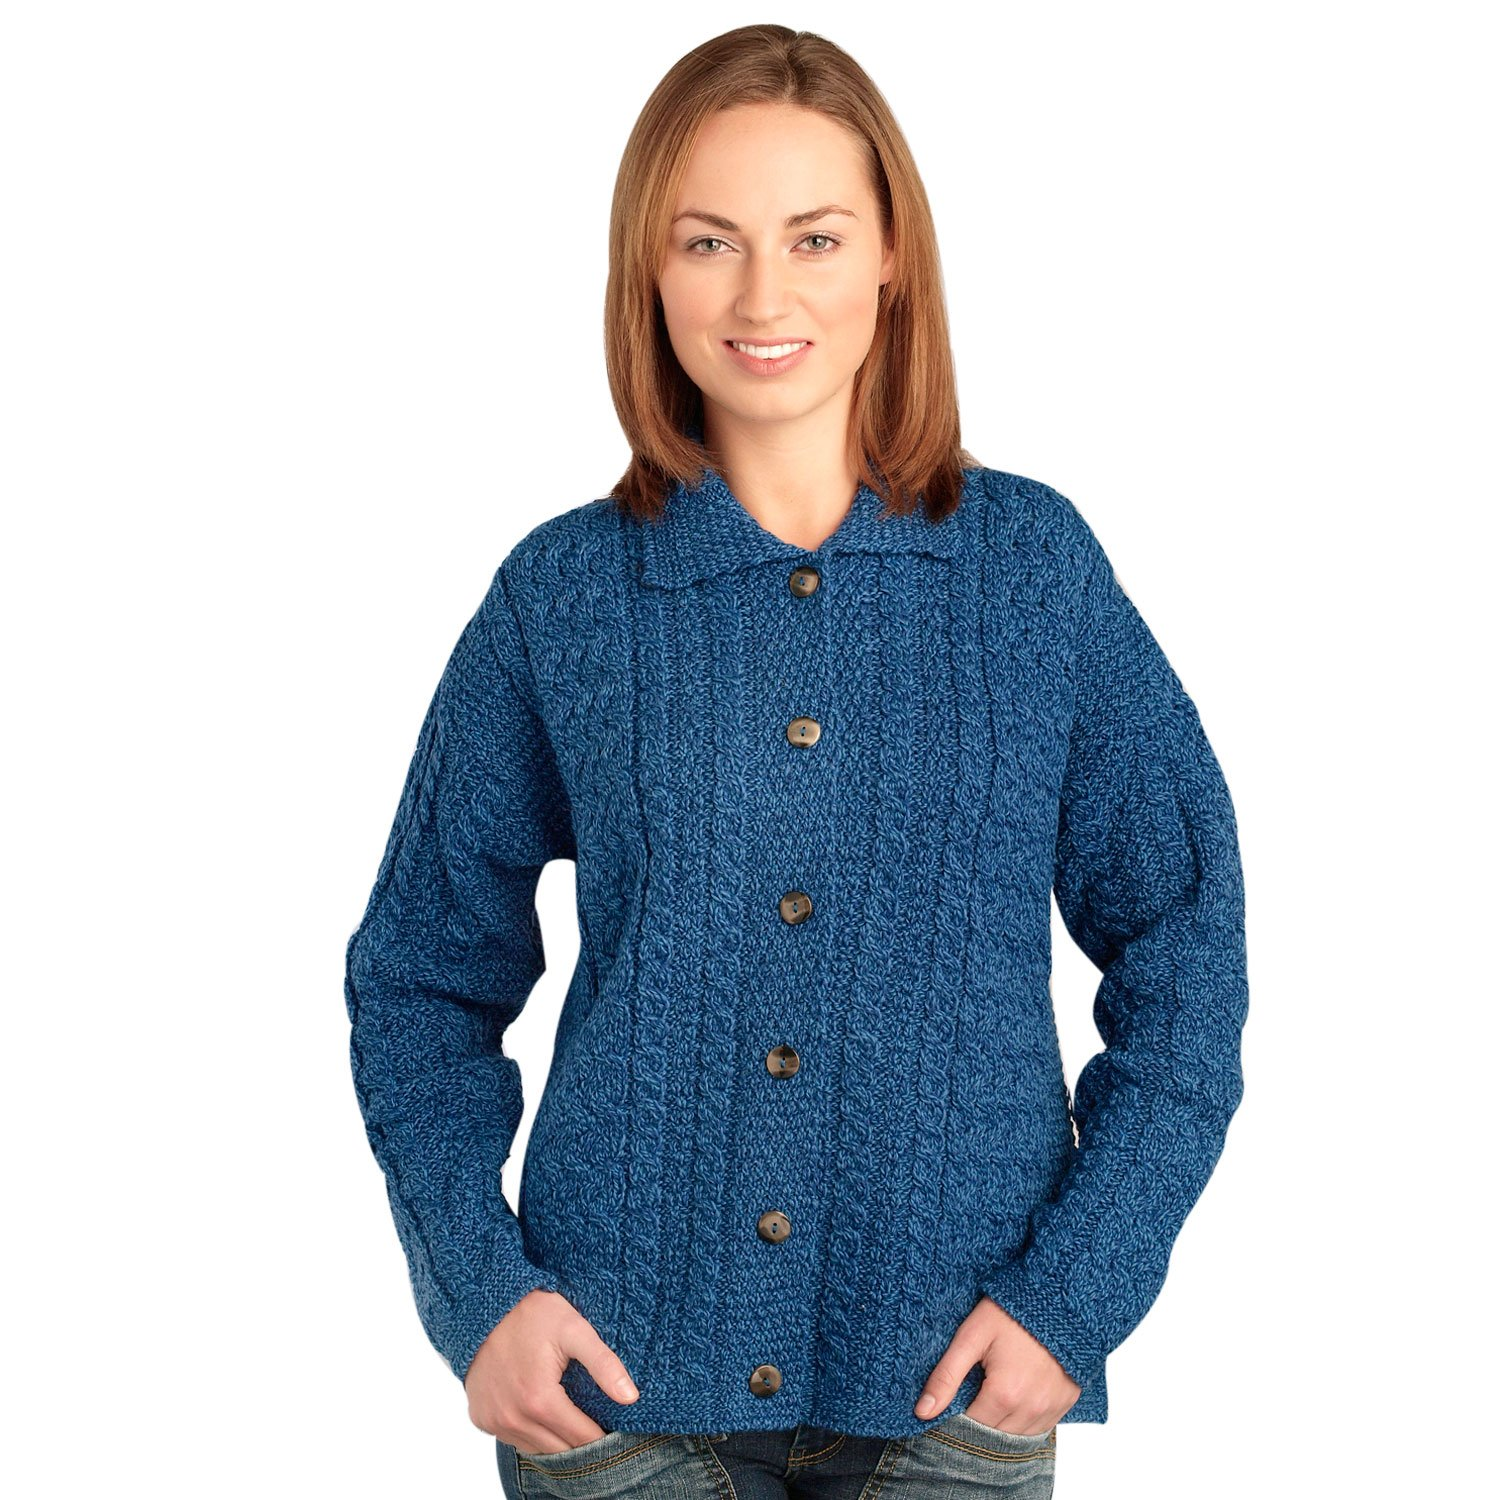 Ladies Colorful 1920s Sweaters and Cardigans History 100% Irish Merino Wool Merino Button Collar Sweater $87.50 AT vintagedancer.com